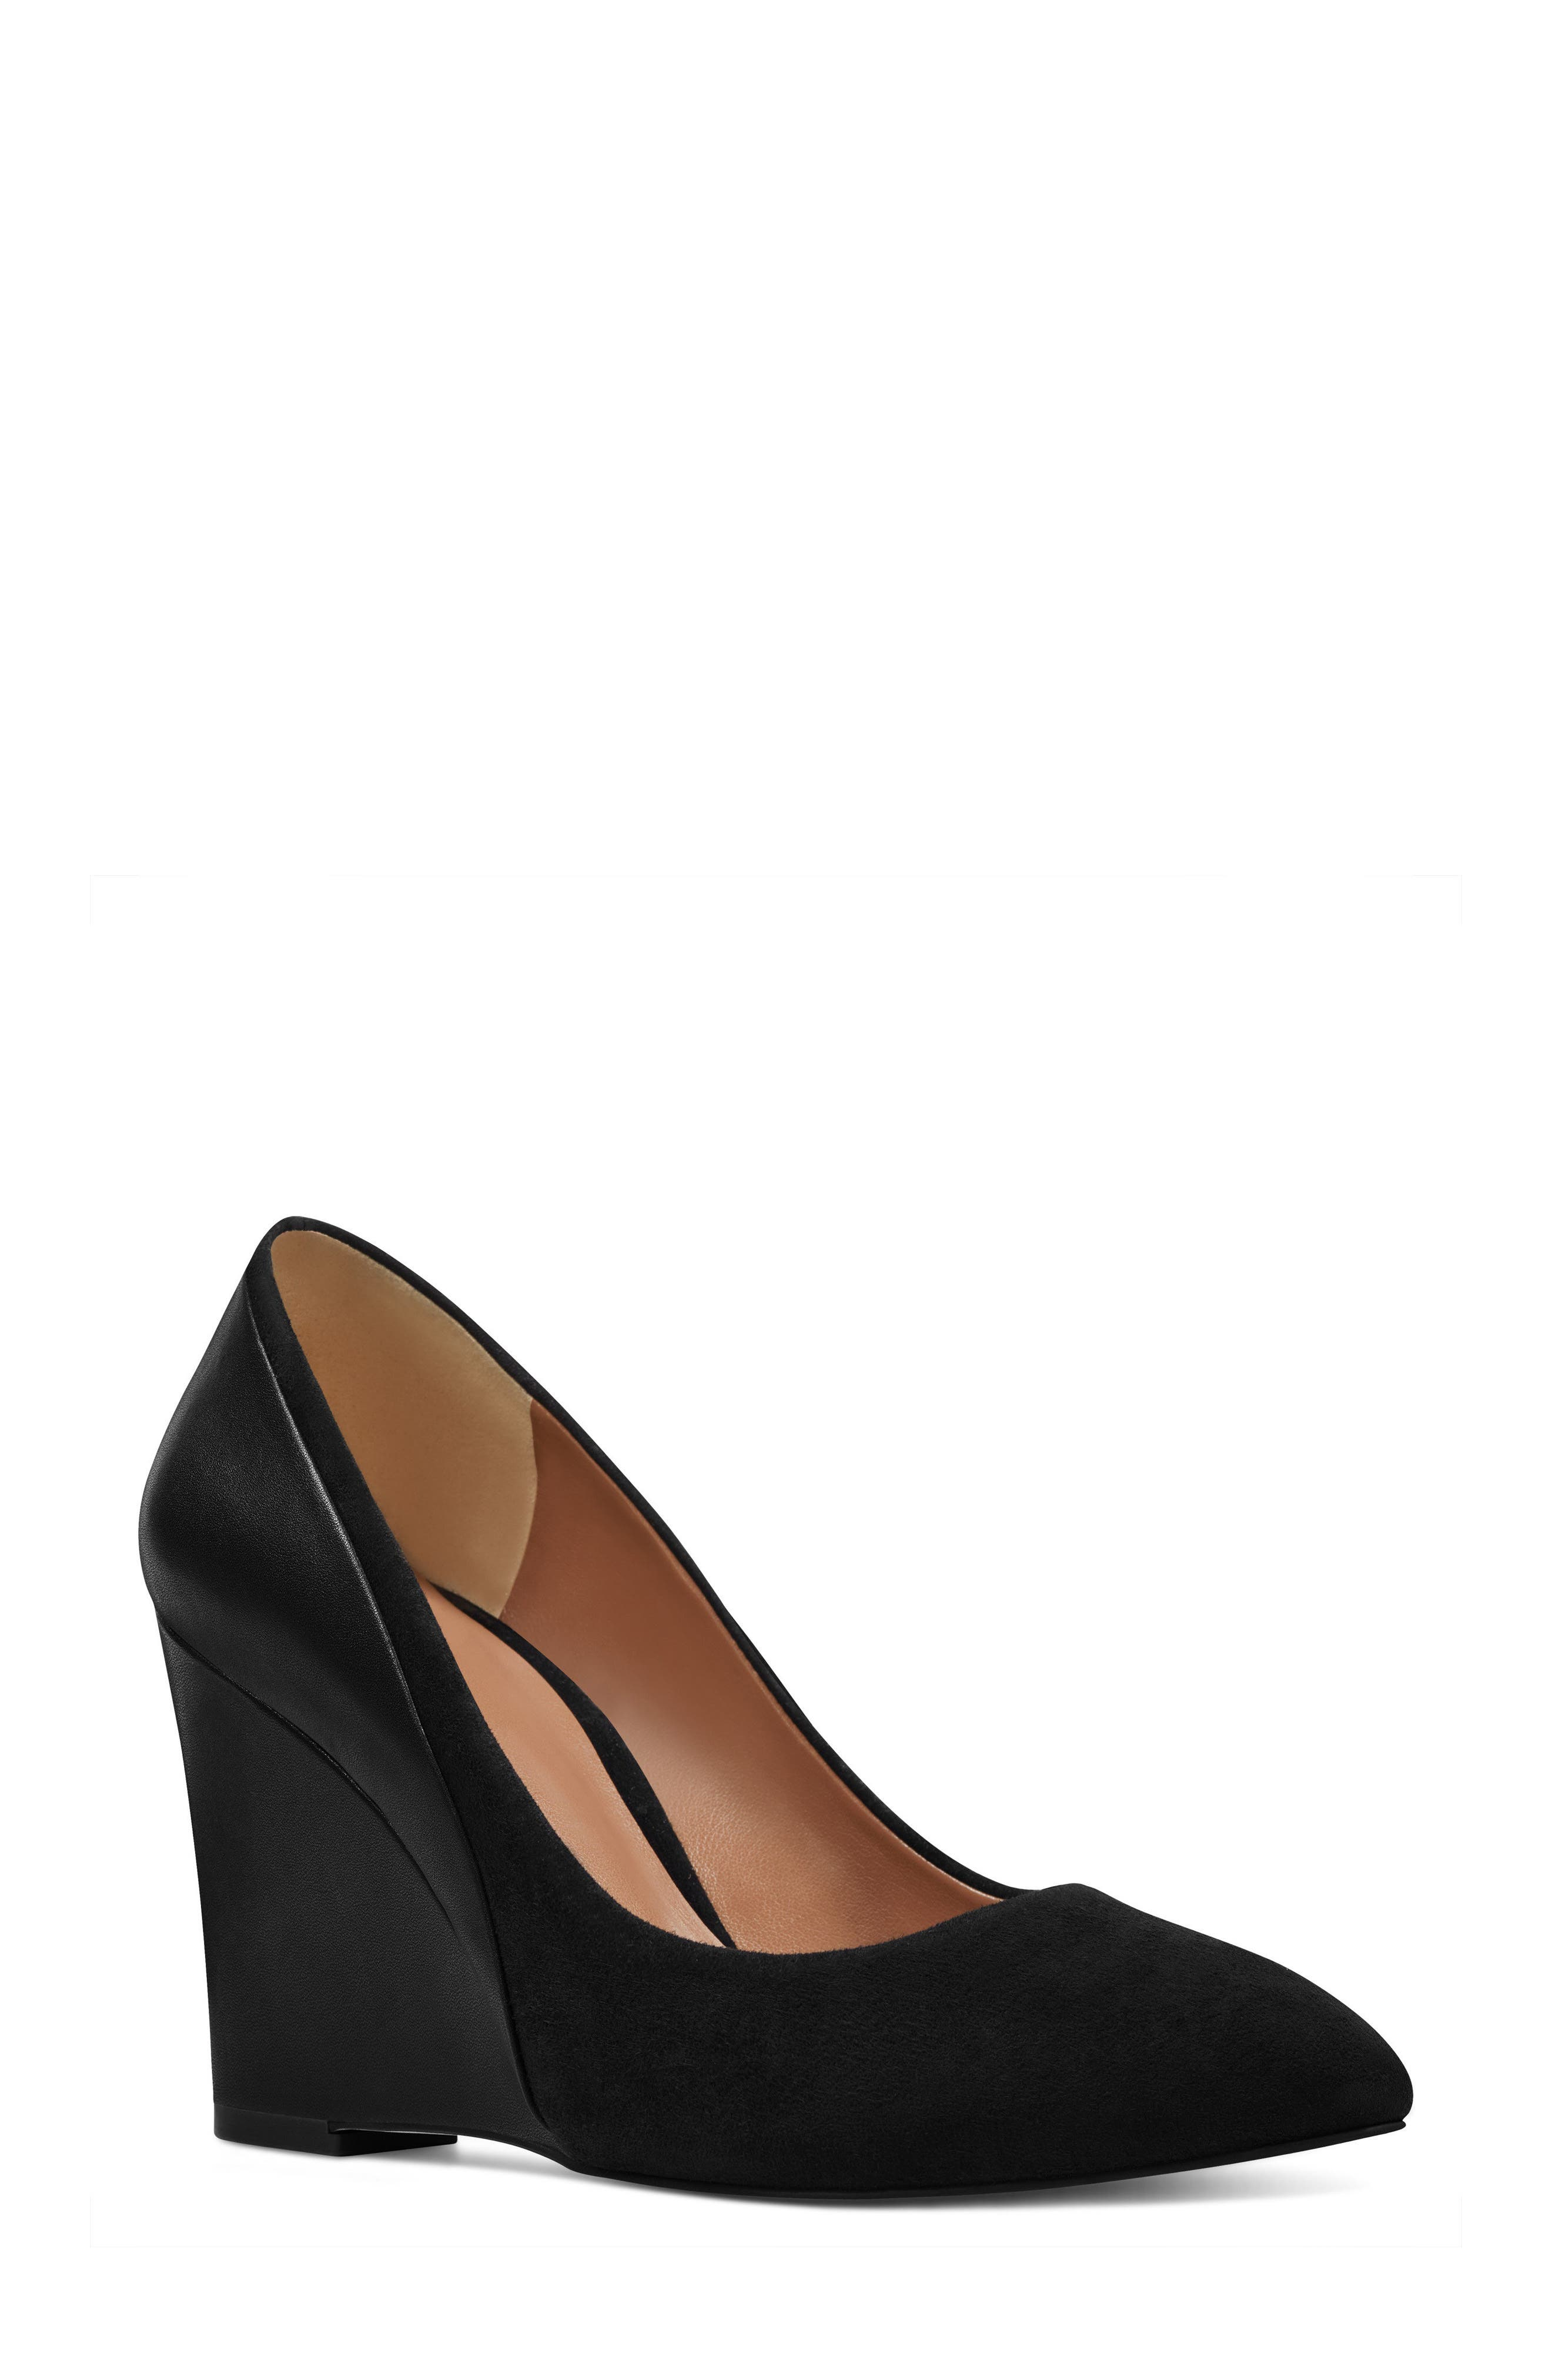 Daday Wedge,                         Main,                         color,